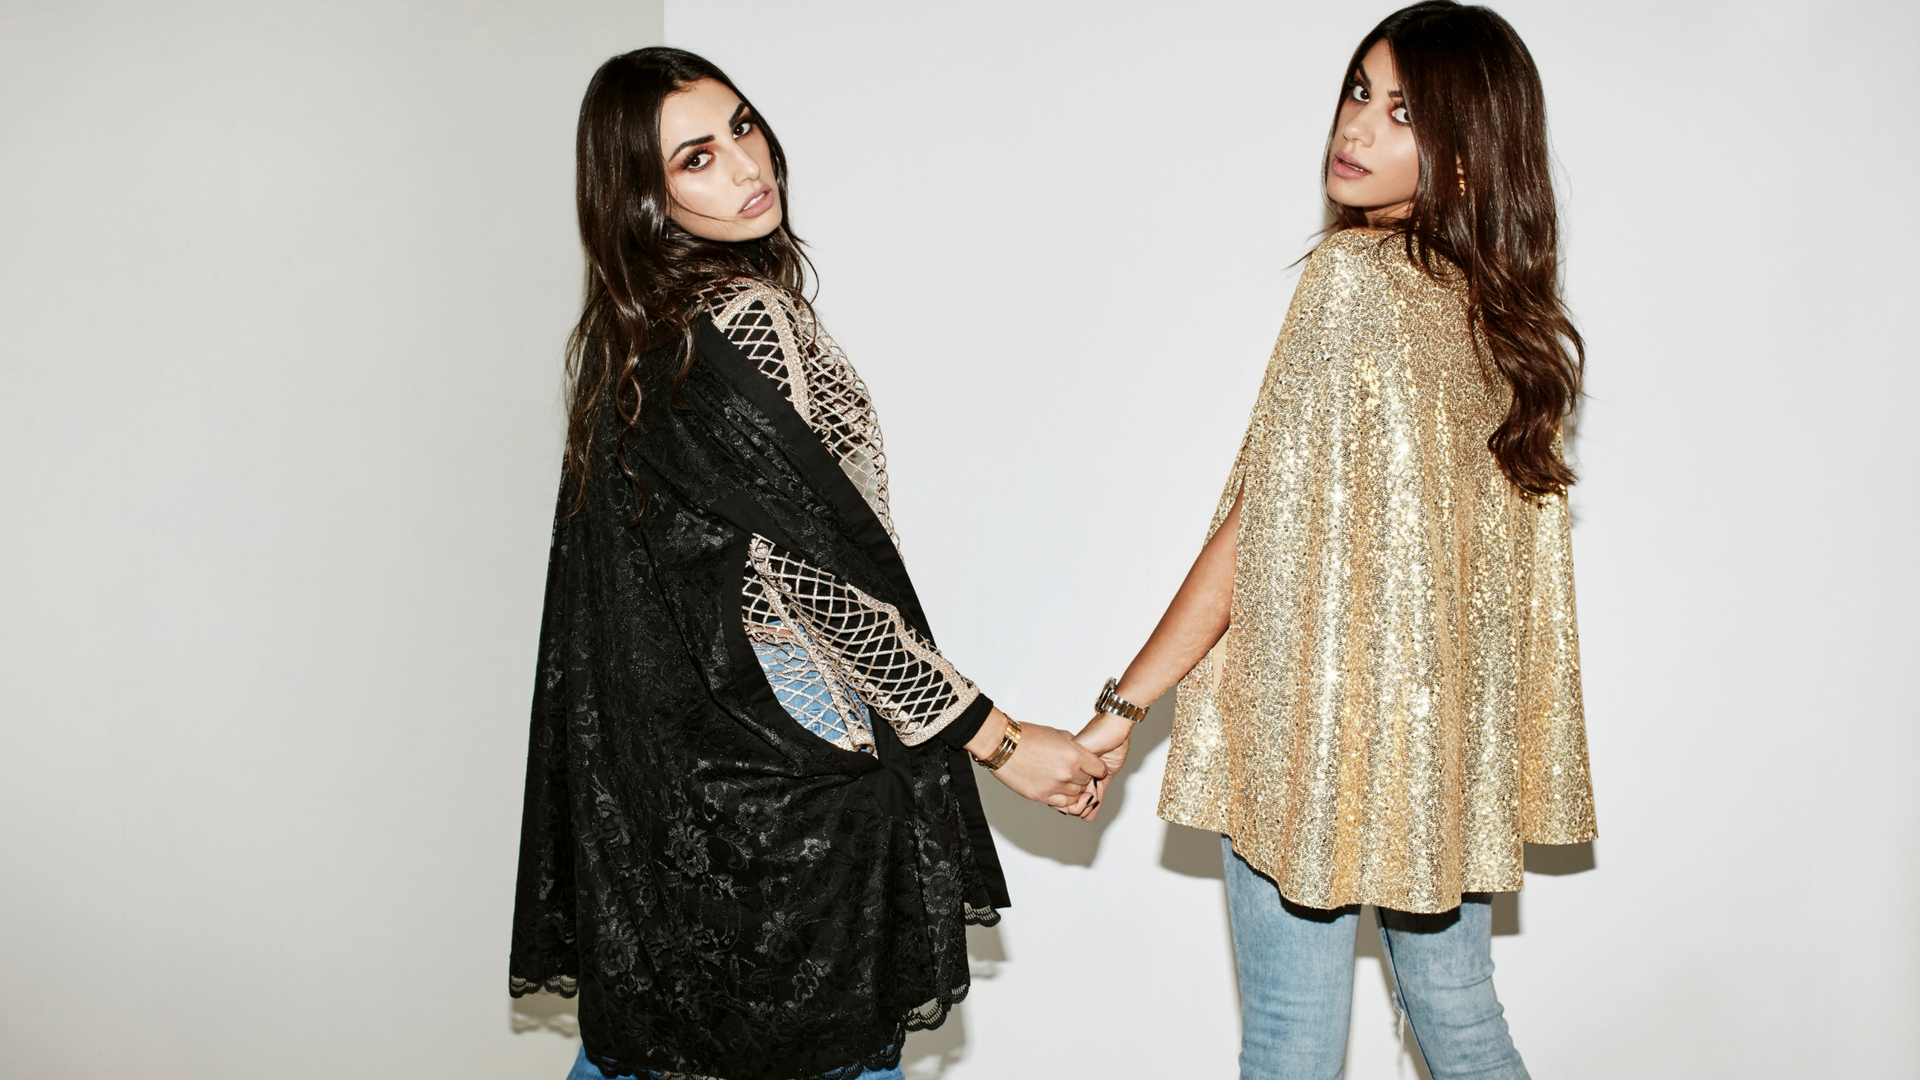 Sisters at heart, designers by vocation, Rima and Dina Zahran talk family values and style reinventions